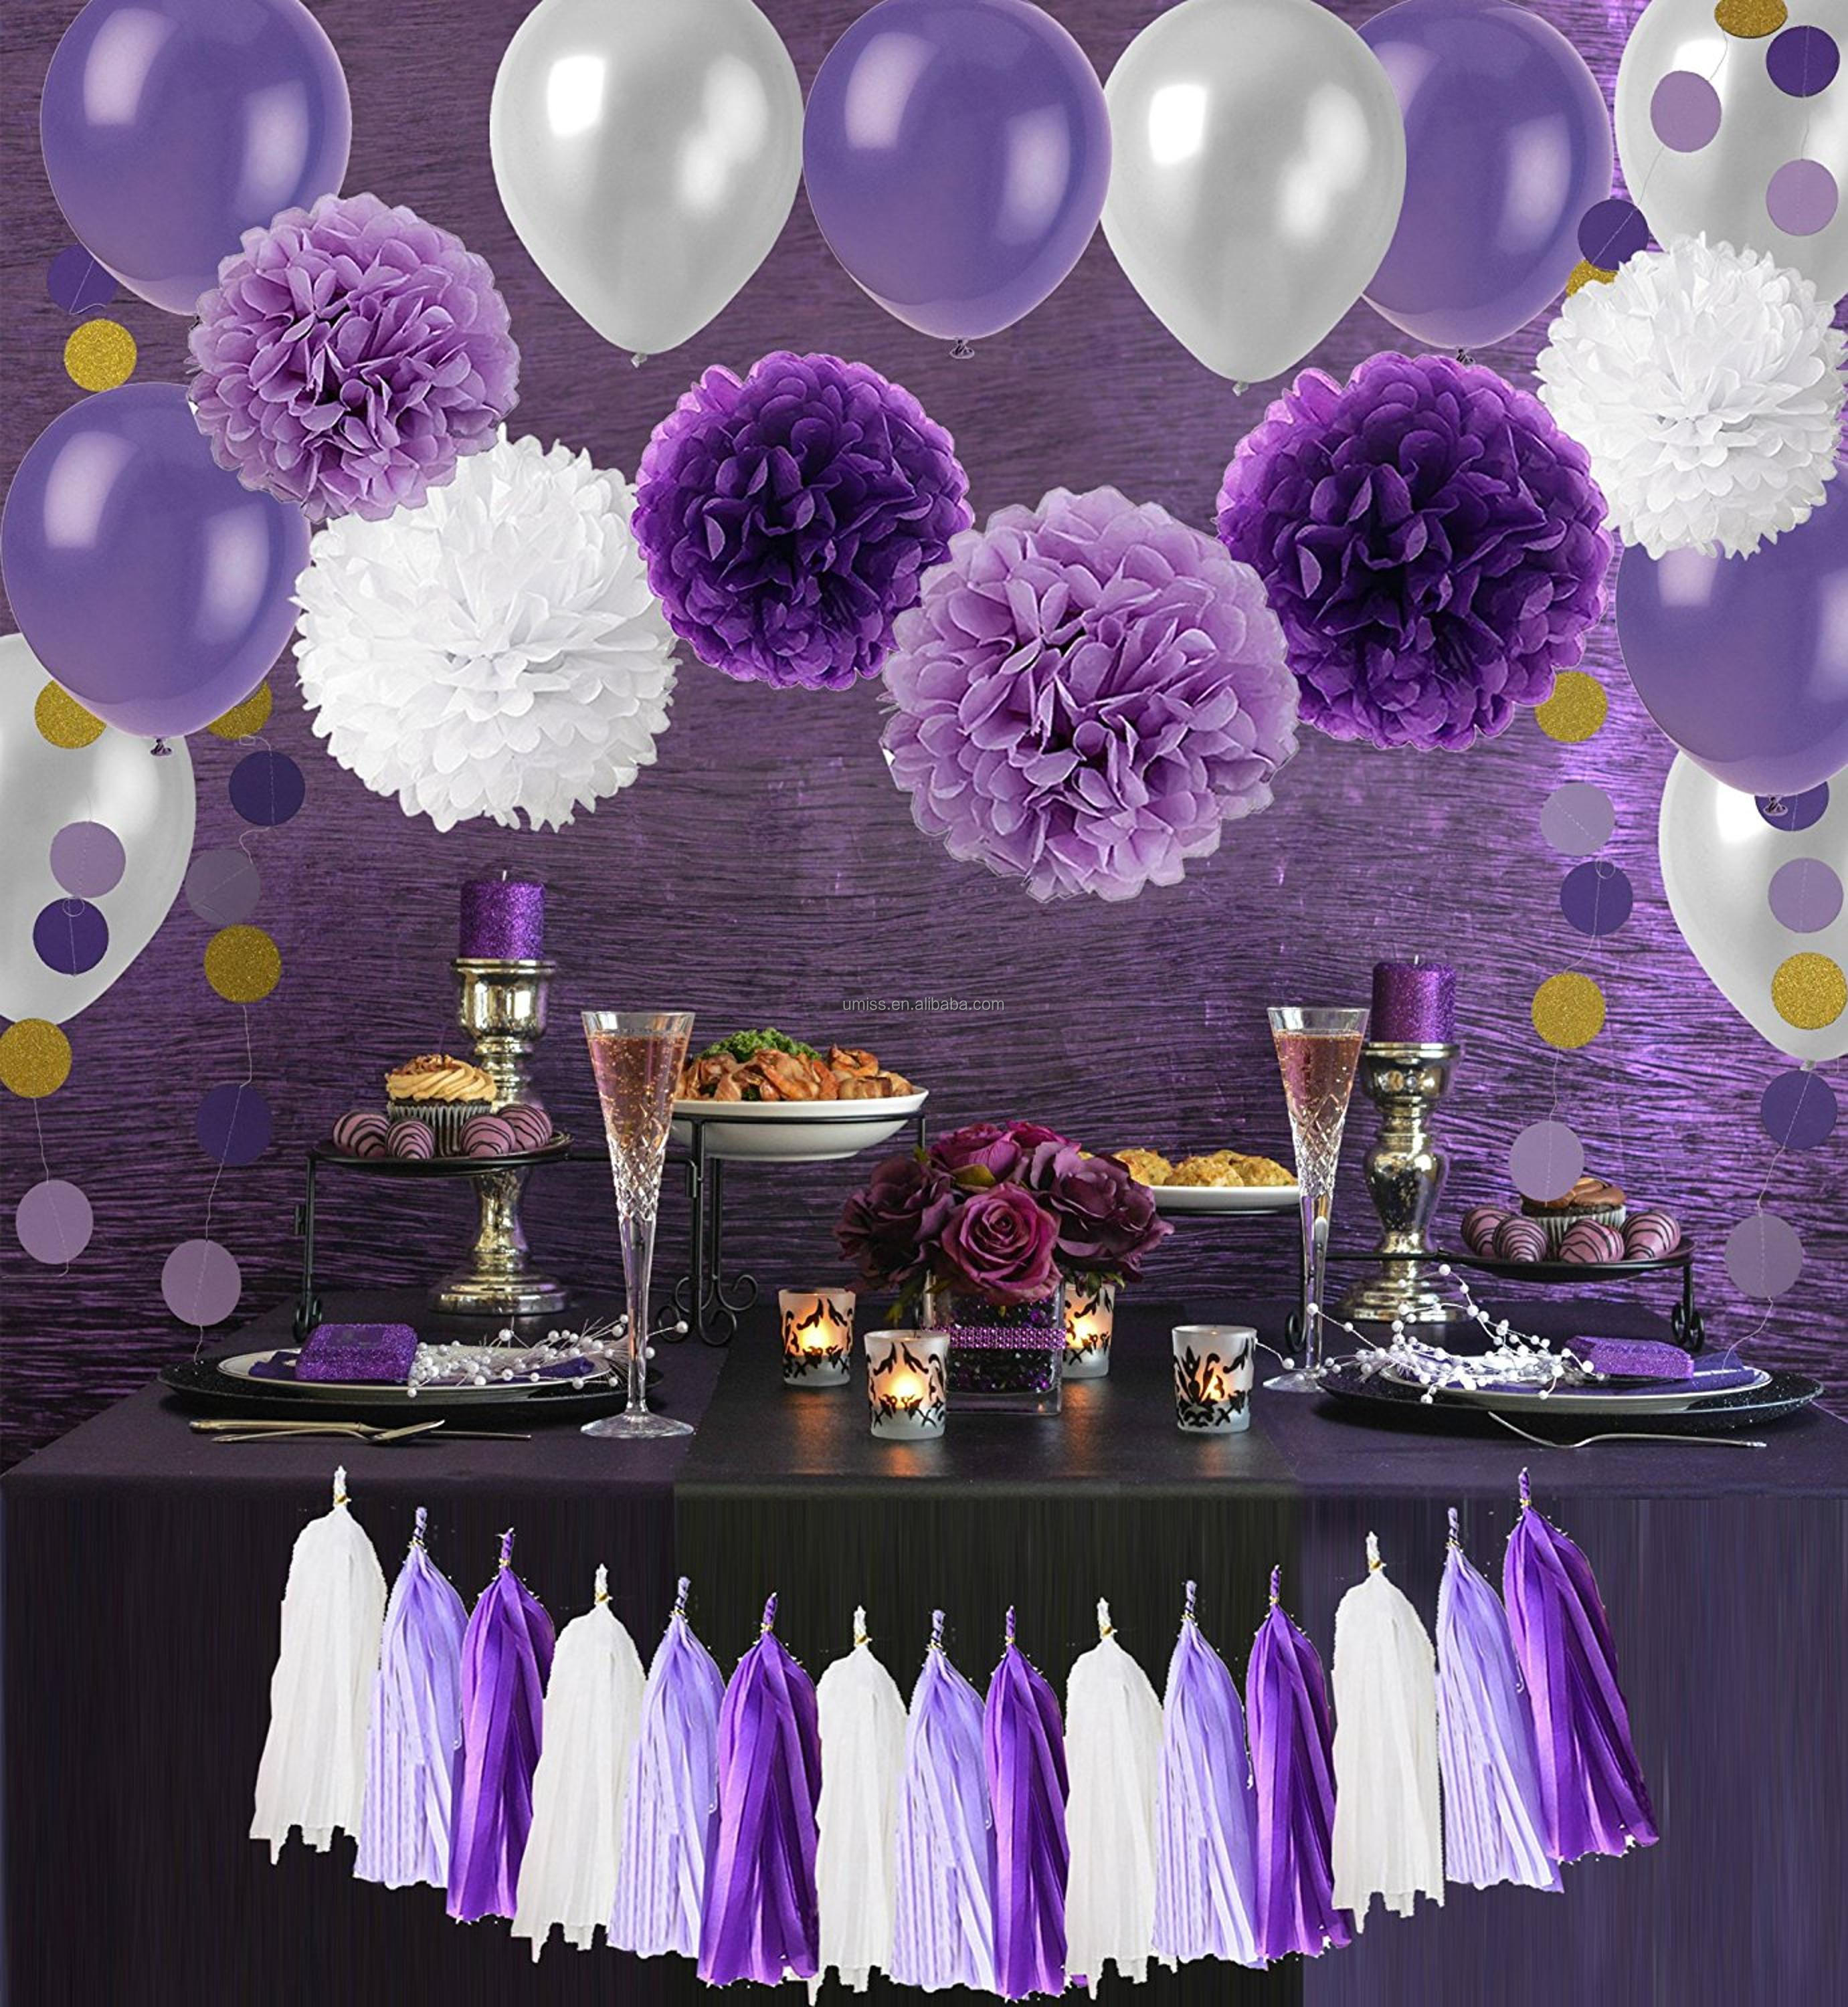 Birthday party backdrop tissue paper pom poms product on alibaba com - Paper Pom Poms With Tissue Paper Tassel Polka Dot Garland Hanging Swirl Decorations And